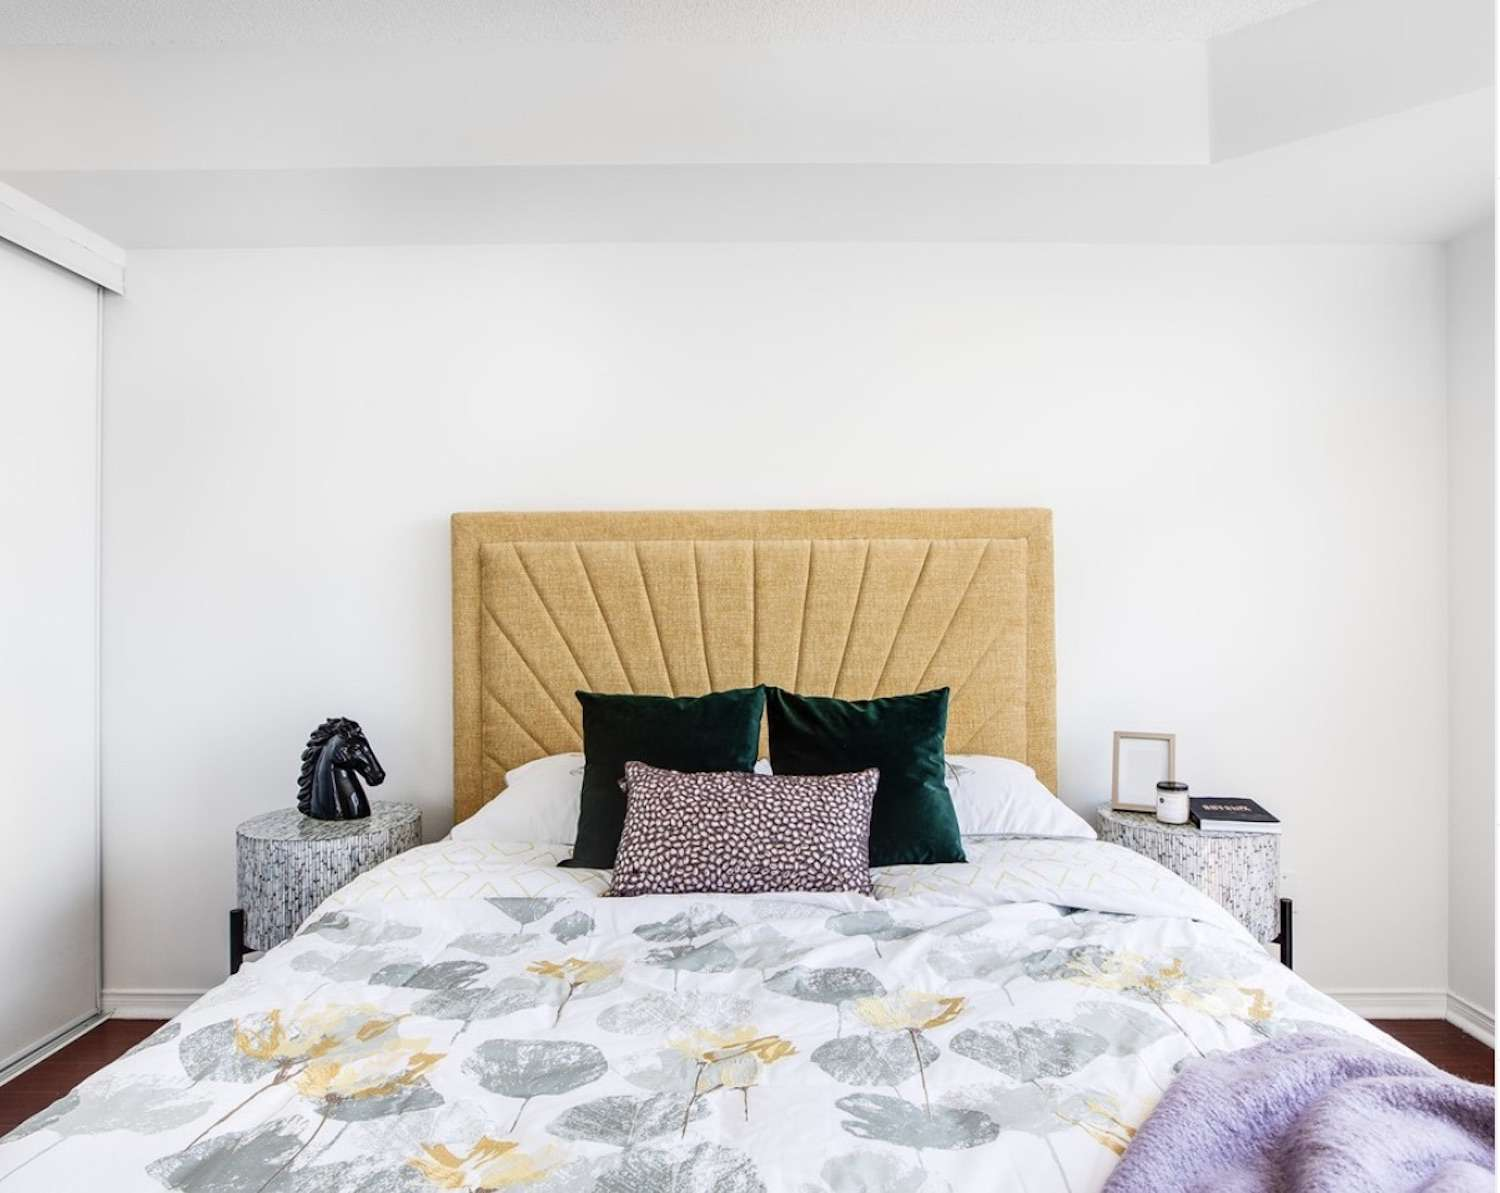 bedrom with yellow and purple color scheme, green accent pillows and white walls,